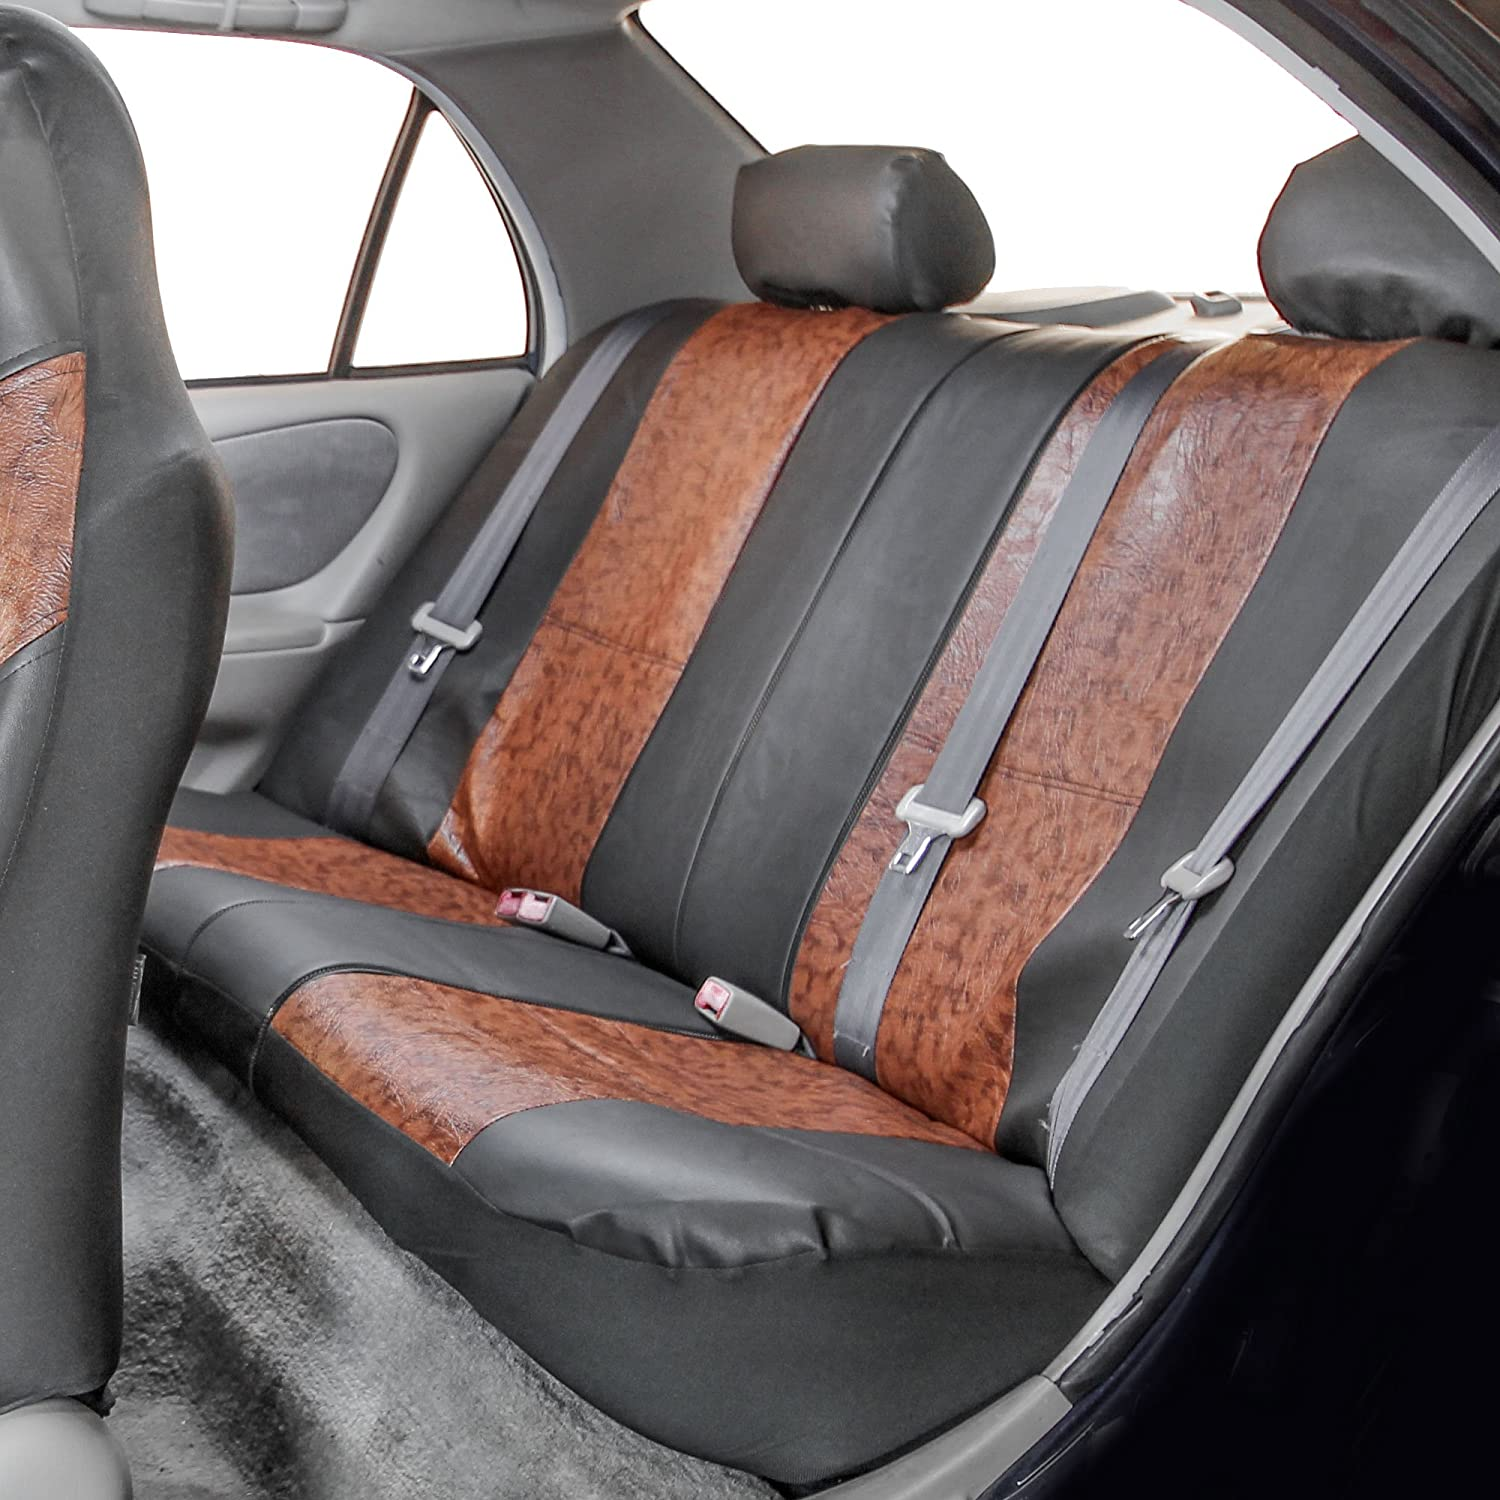 Truck Solid Beige Color- Fit Most Car or Van FH GROUP FH-PU160217 PU Textured High Back Leather Car Seat Covers Airbag compatible and Split Bench Suv